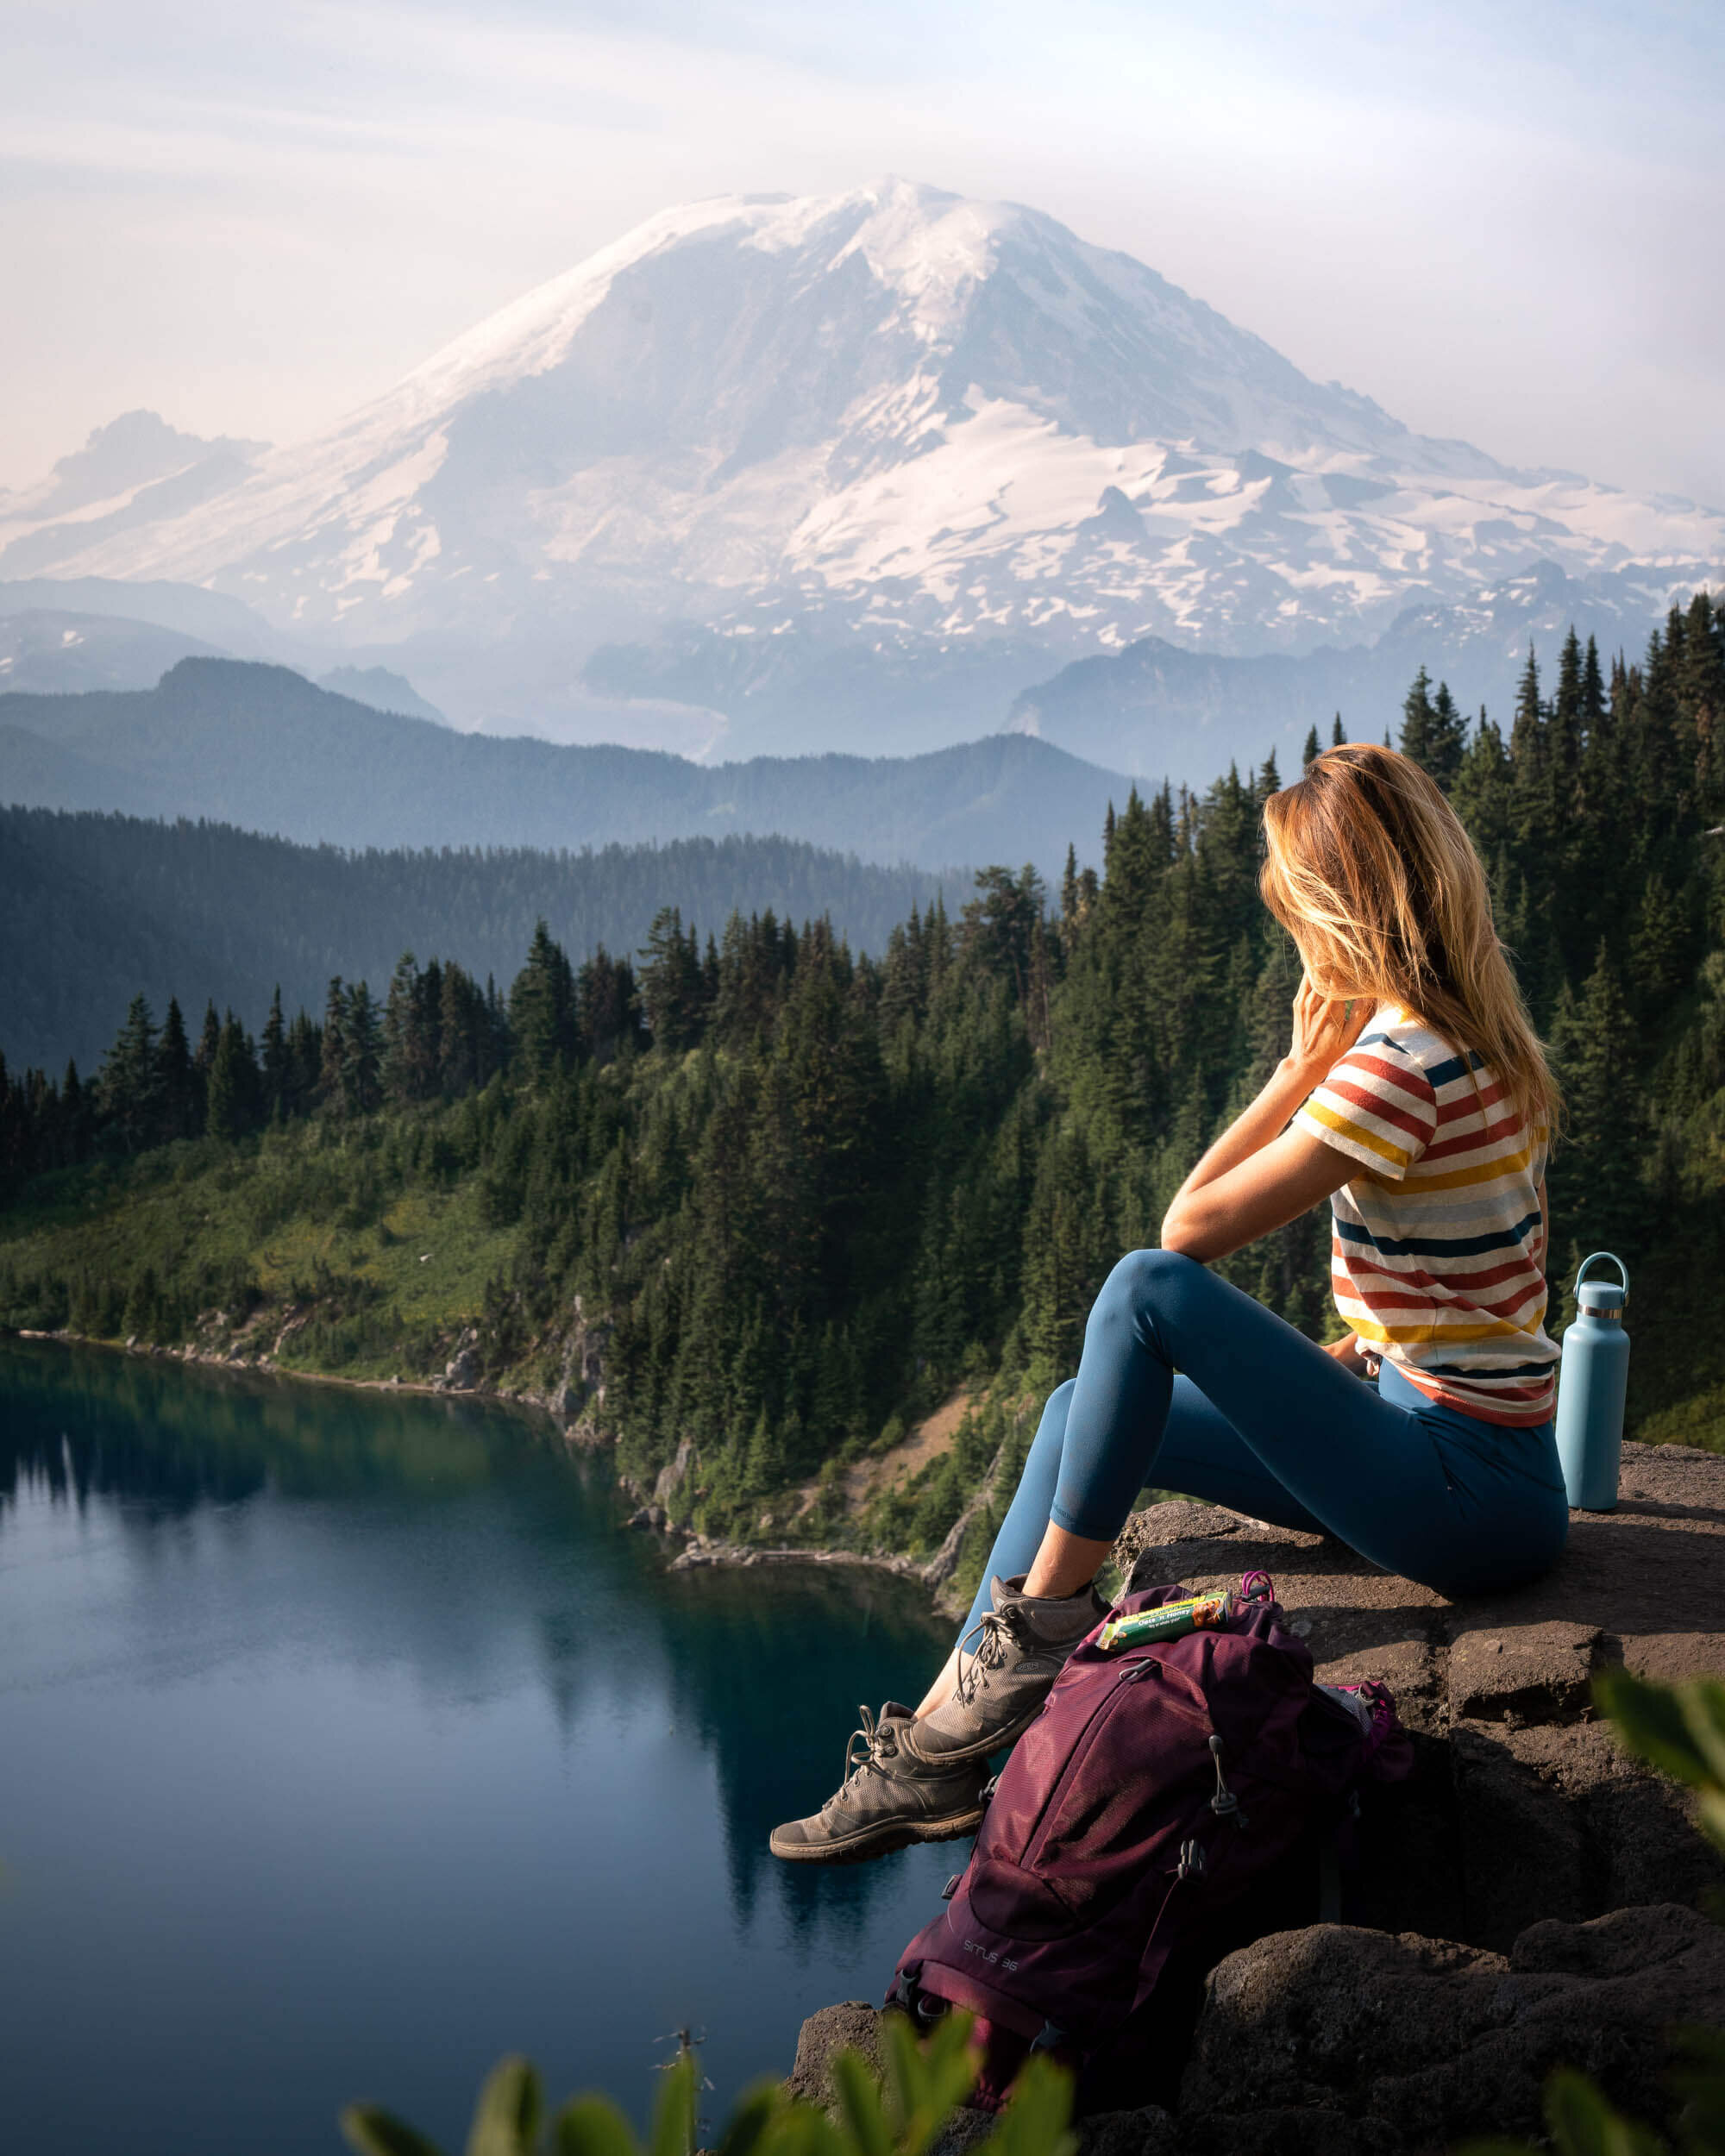 Summit Lake Hike in Washington offers beautiful views of Mount Rainier. Wearing: Keen  Hiking Boots , Osprey  Sirrus 36 Backpack , and  Hydroflask .